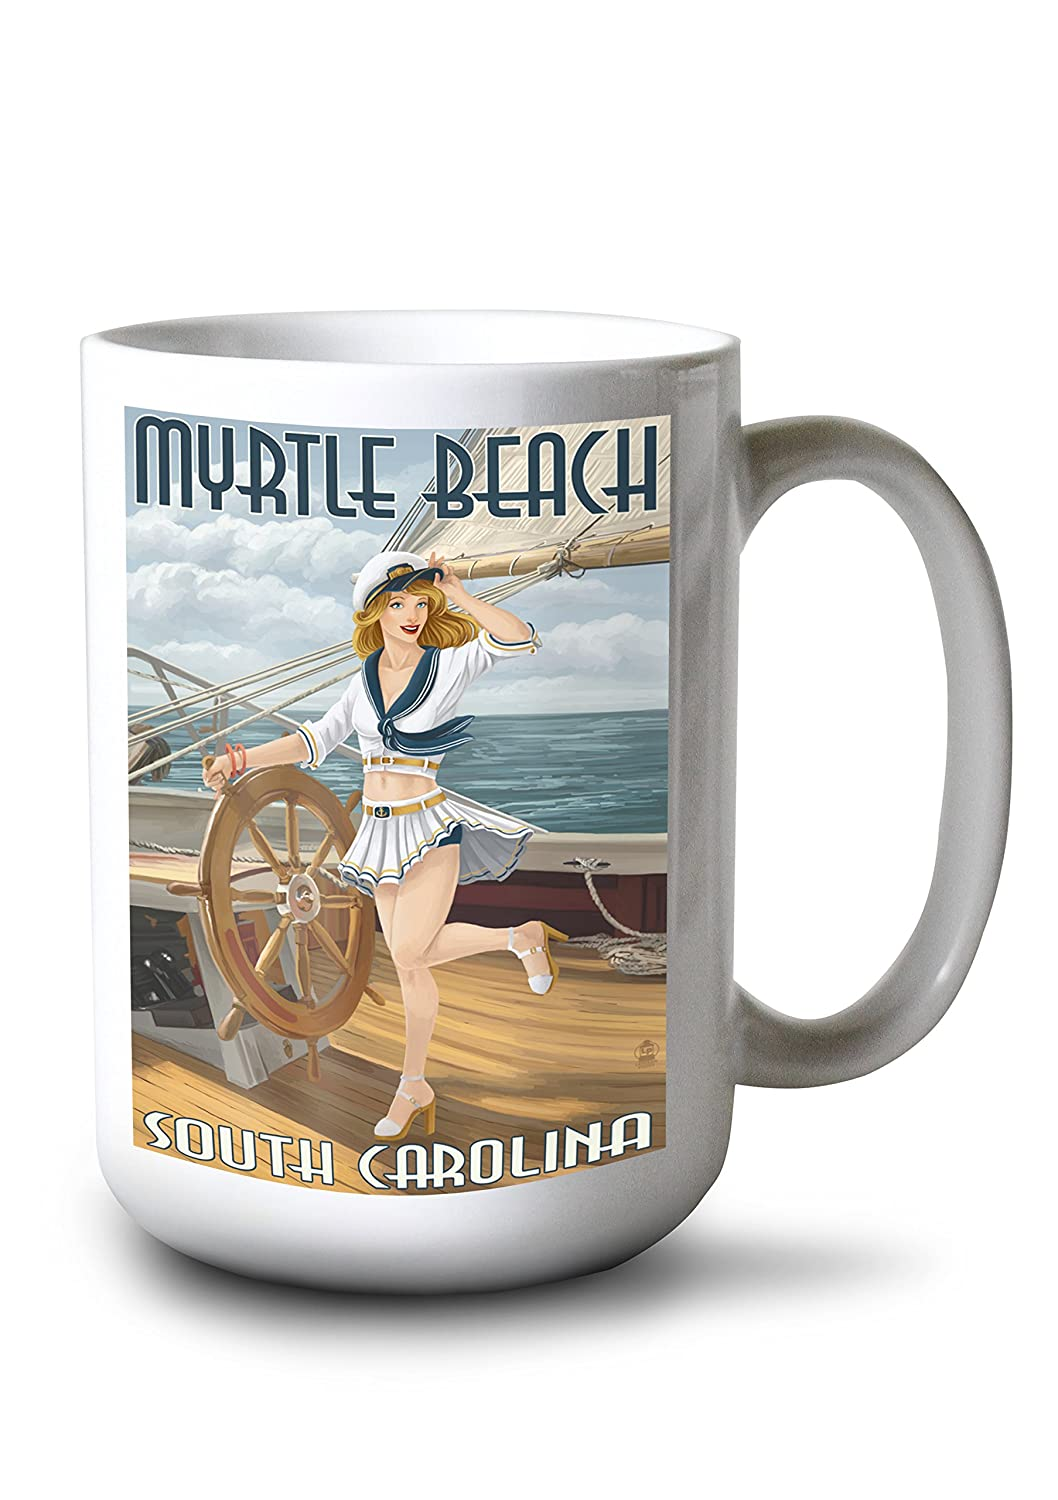 Myrtle Beach , South Carolina – Pinup Girl Sailor 15oz Mug LANT-3P-15OZ-WHT-33727 B077RVQSZM  15oz Mug